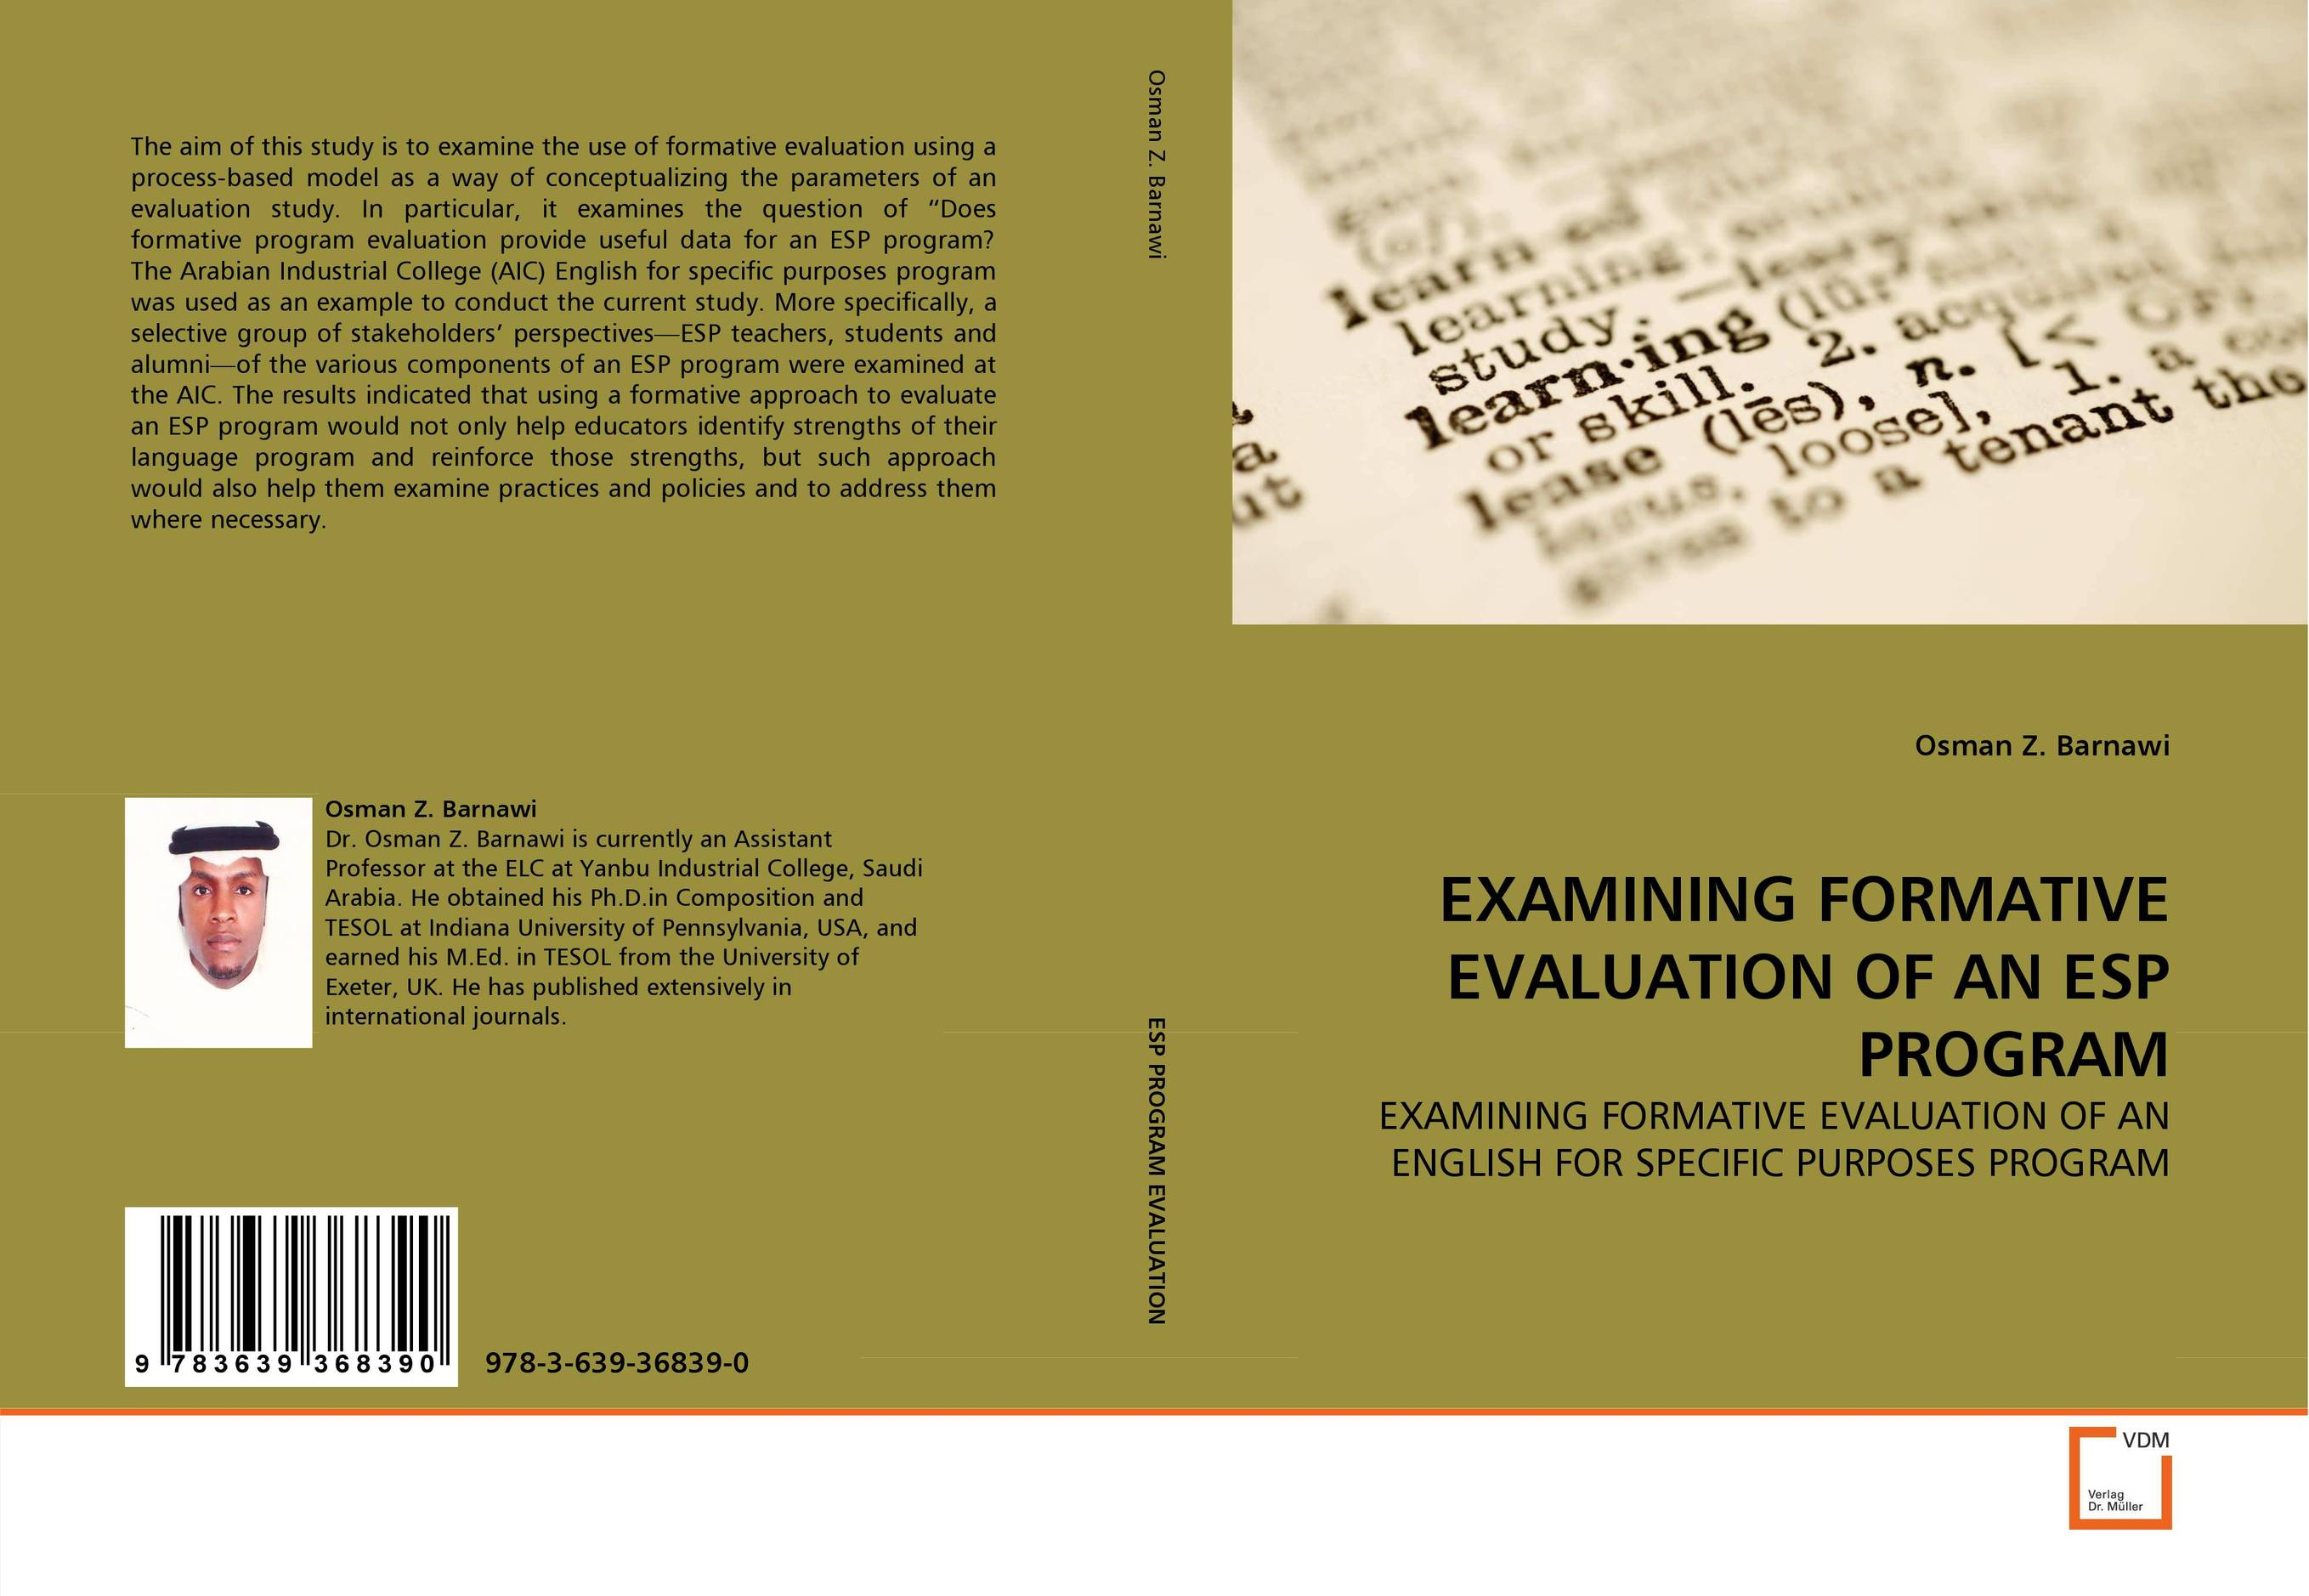 EXAMINING FORMATIVE EVALUATION OF AN ESP PROGRAM ens group сумка париж 15х25х38 см